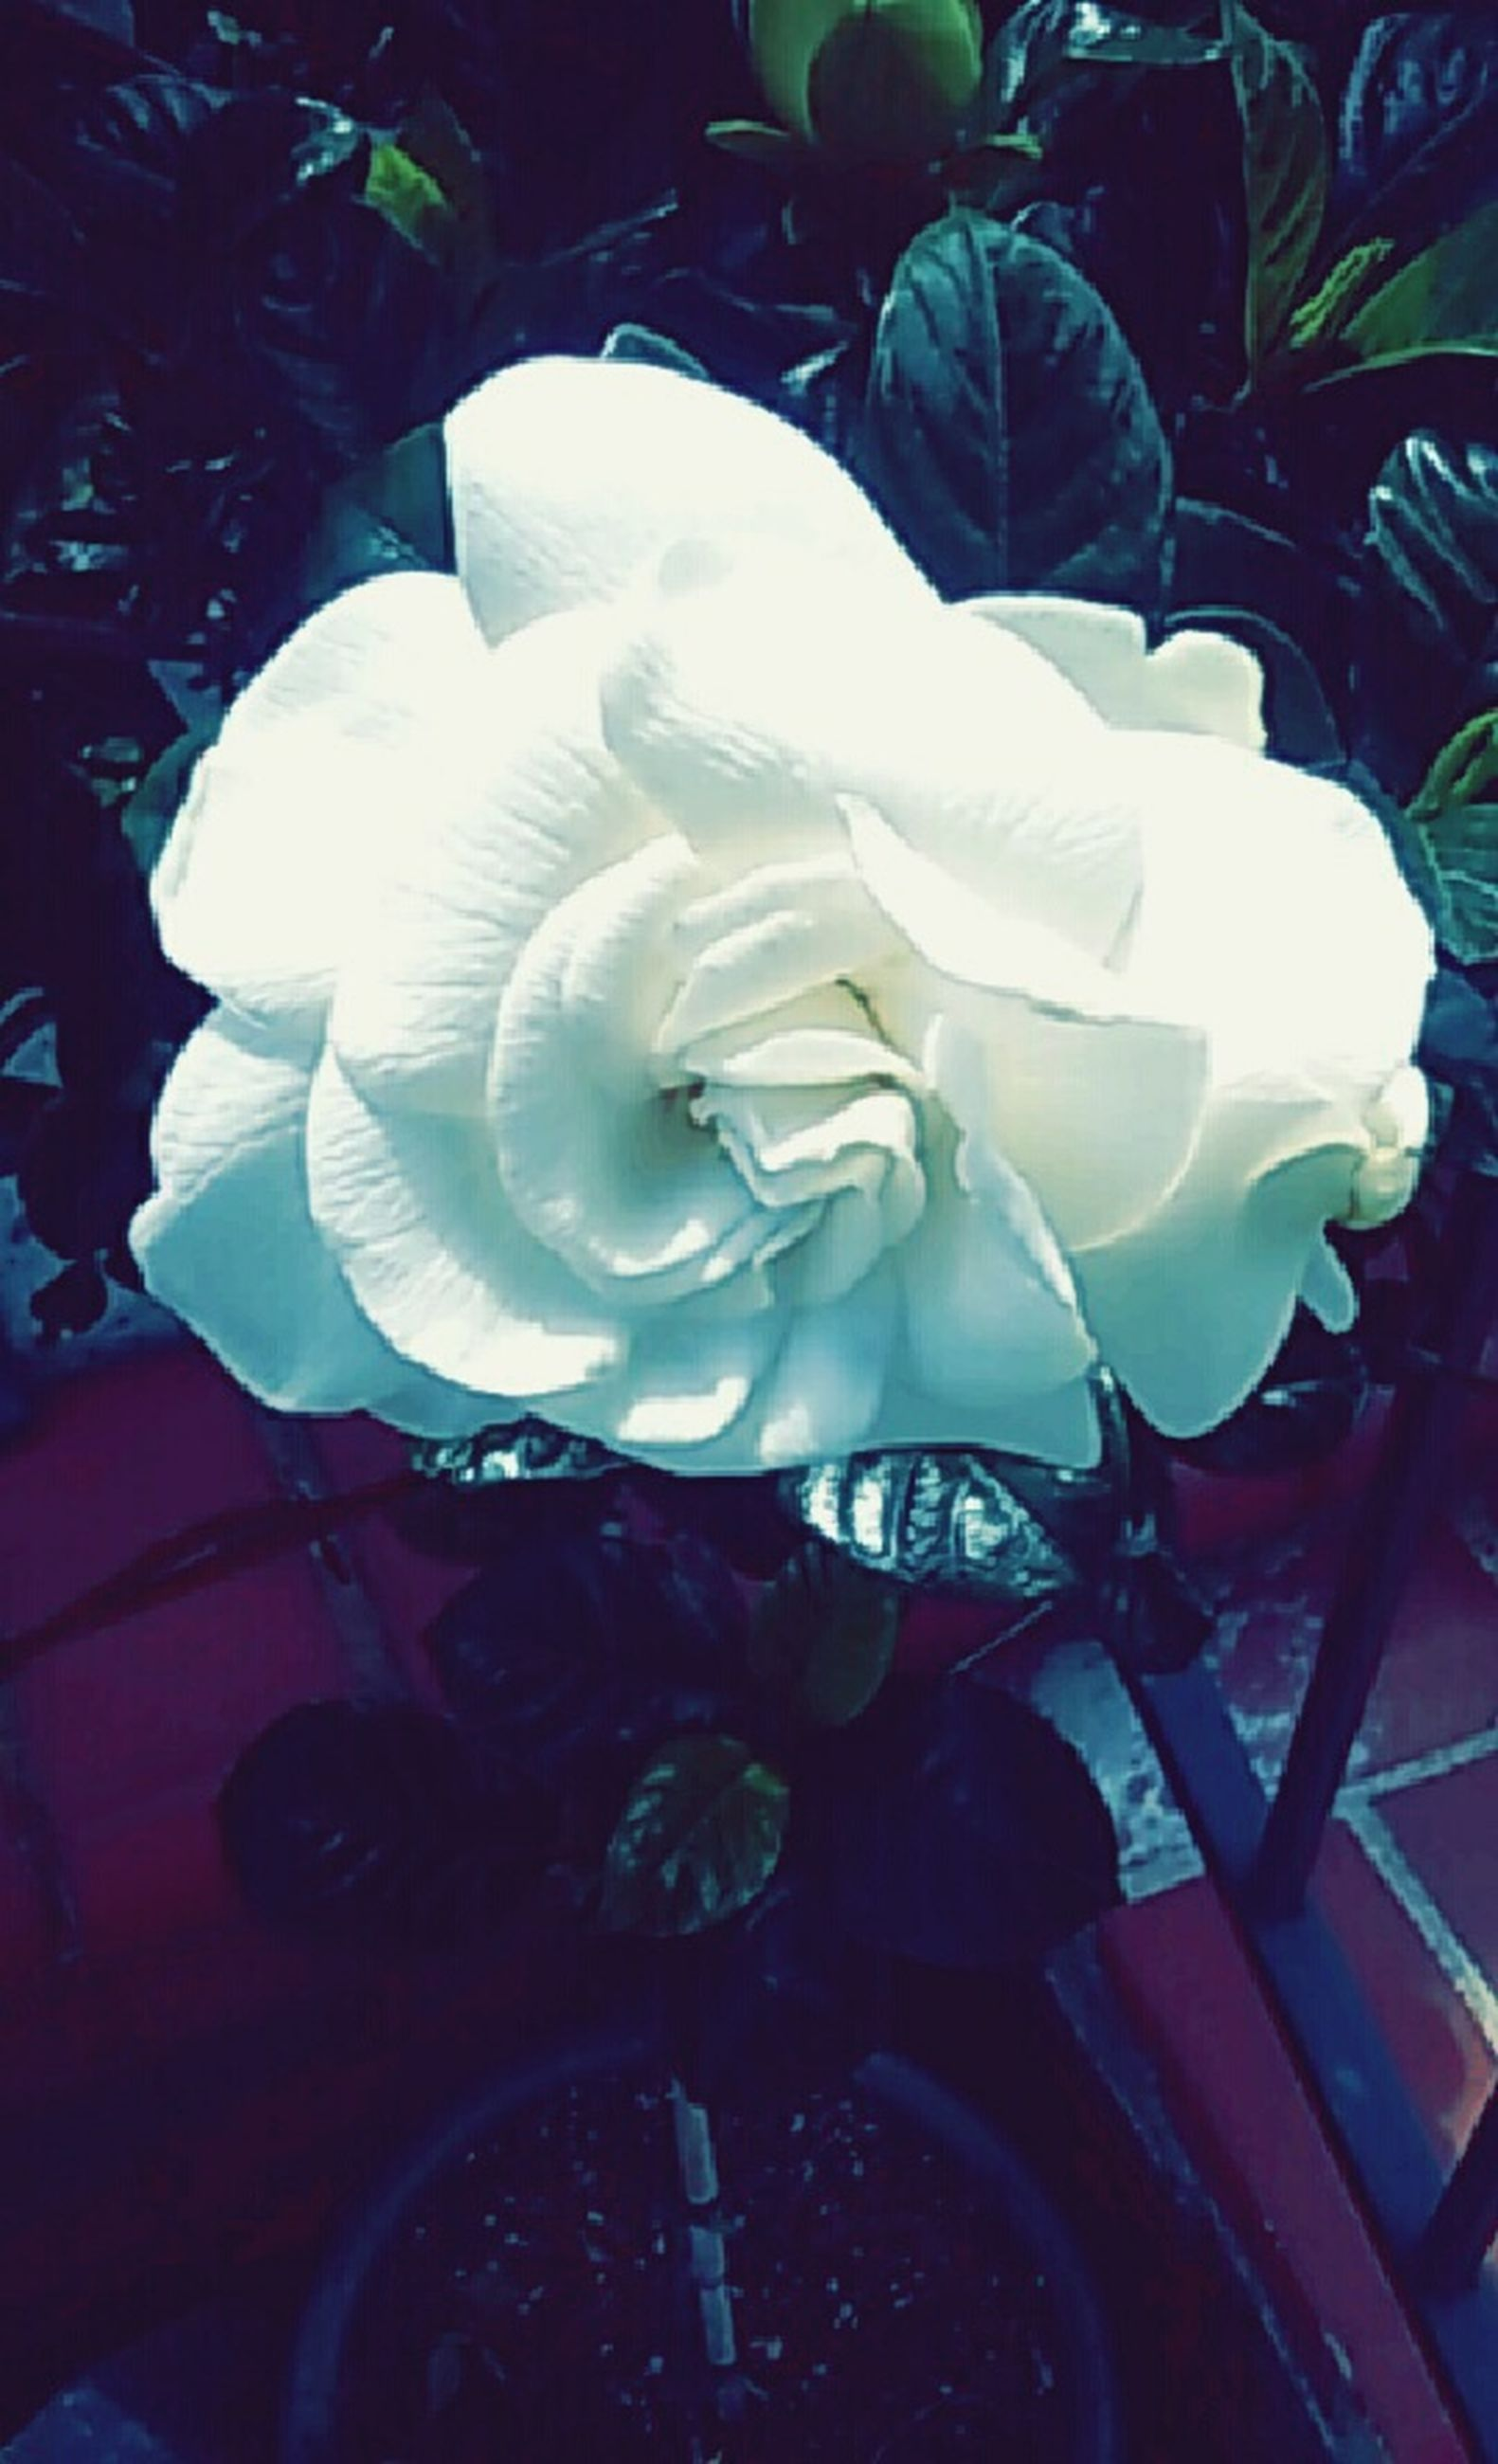 flower, petal, flower head, rose - flower, fragility, indoors, close-up, white color, growth, plant, freshness, single flower, leaf, vase, no people, beauty in nature, nature, high angle view, design, rose